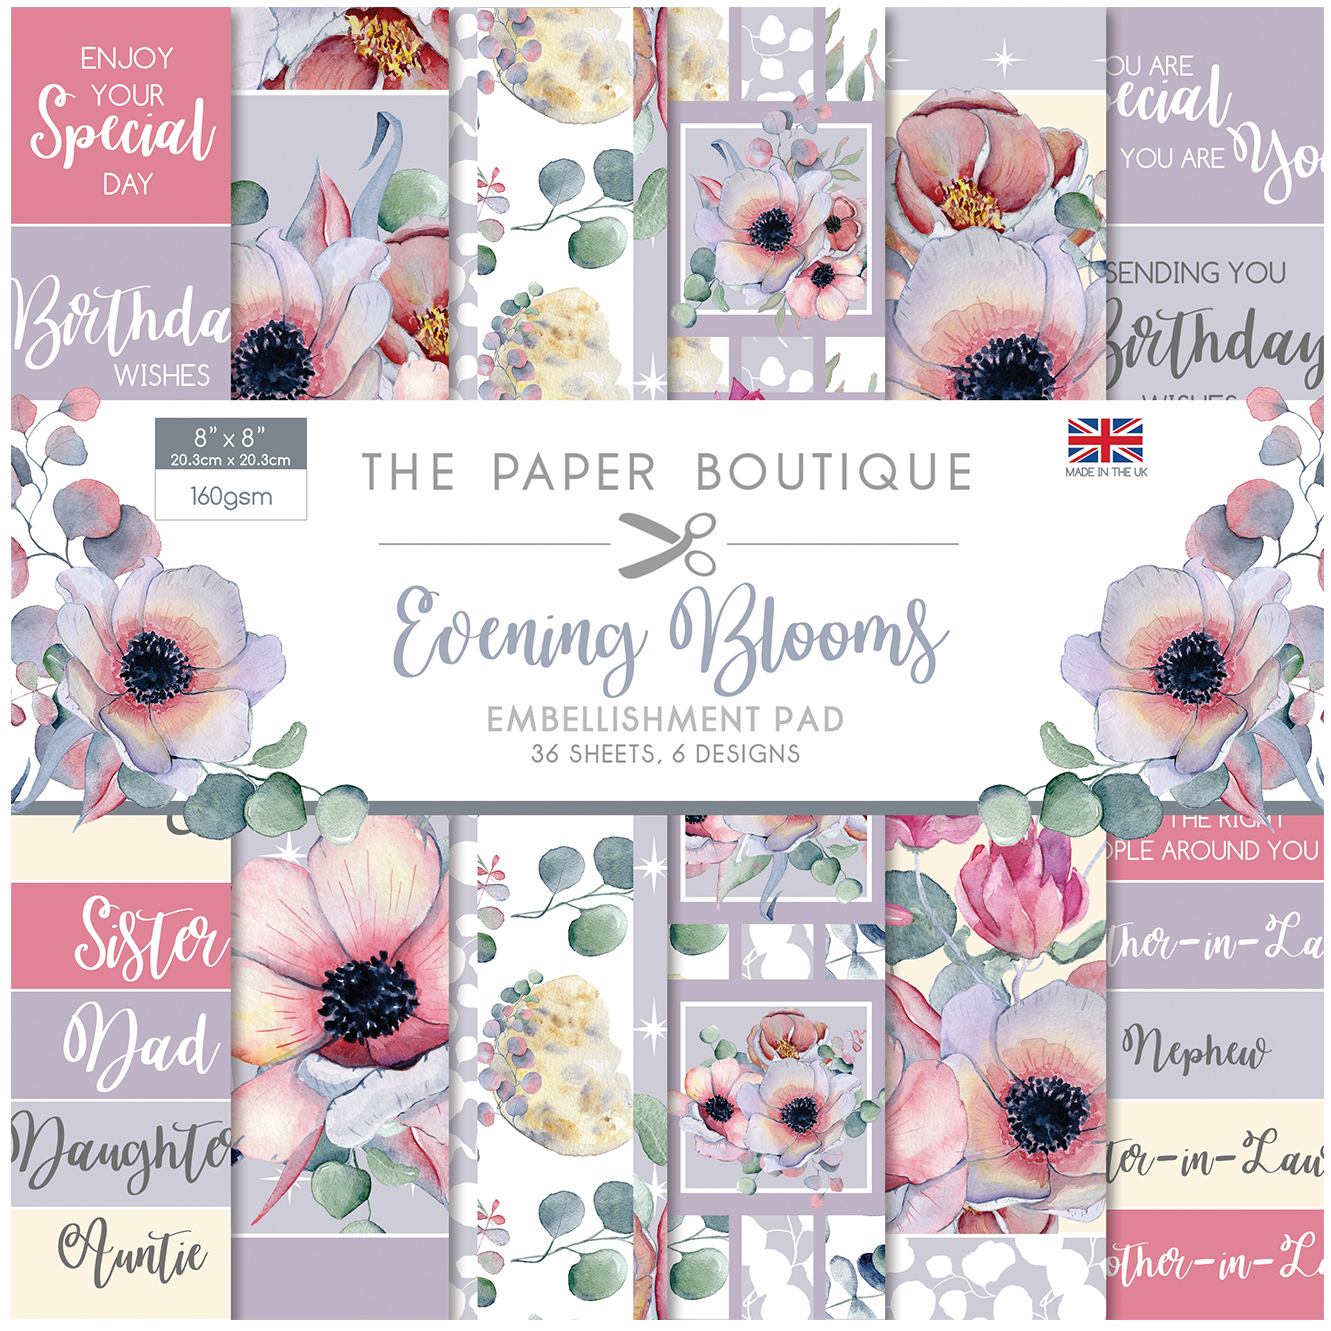 The Paper Boutique Evening Blooms 8″ x 8″ Embellishment Pad